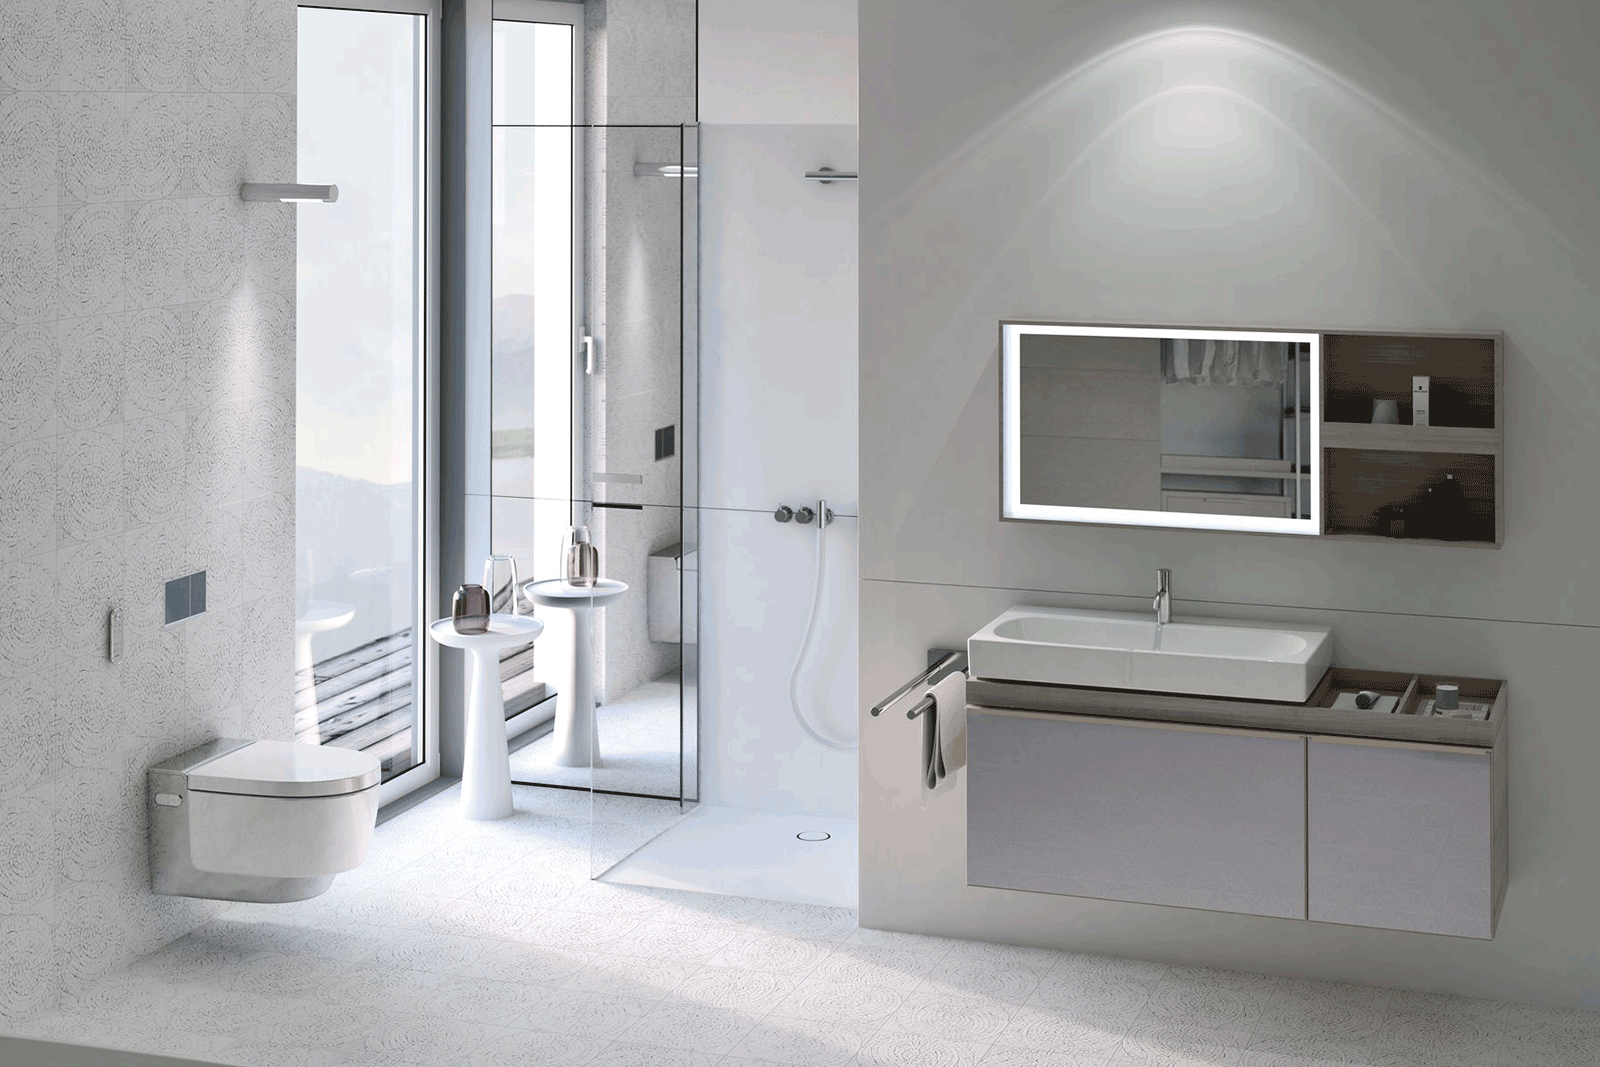 BATHLINE Bathroom Wetroom Design | Bathrooms Northern Ireland | IOM